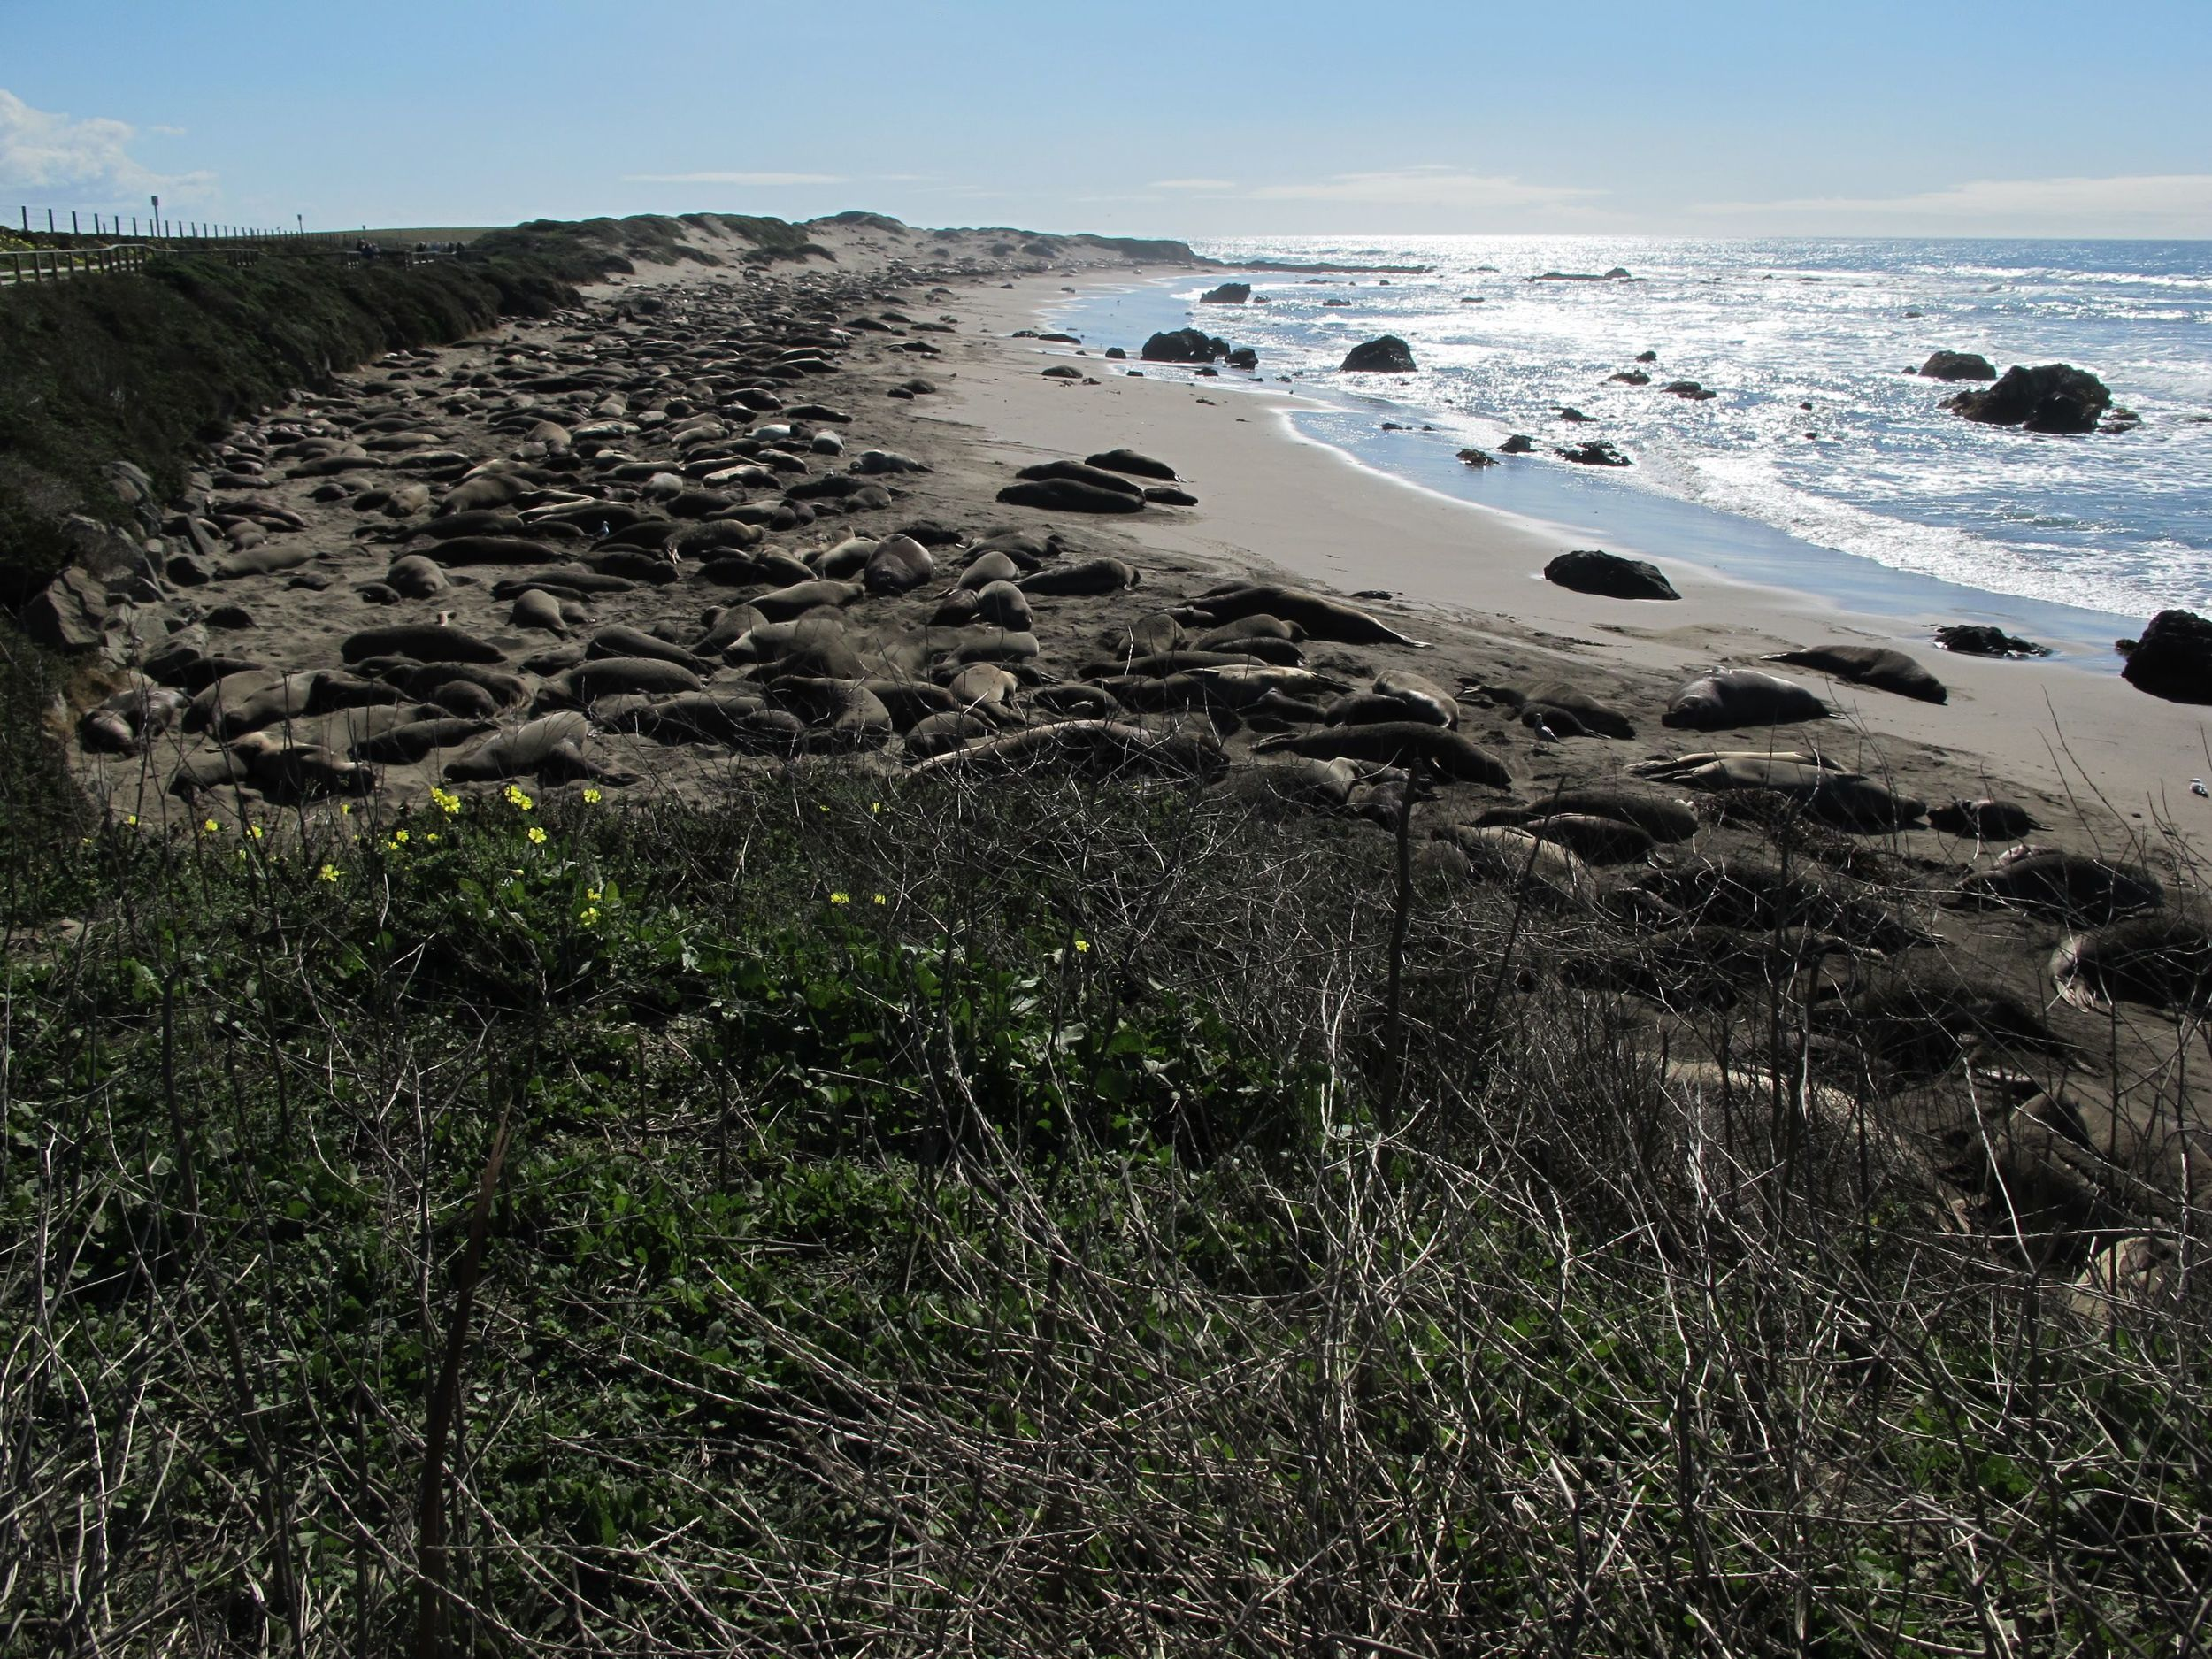 More than 1,000 elephant seals were sunning on the beach.